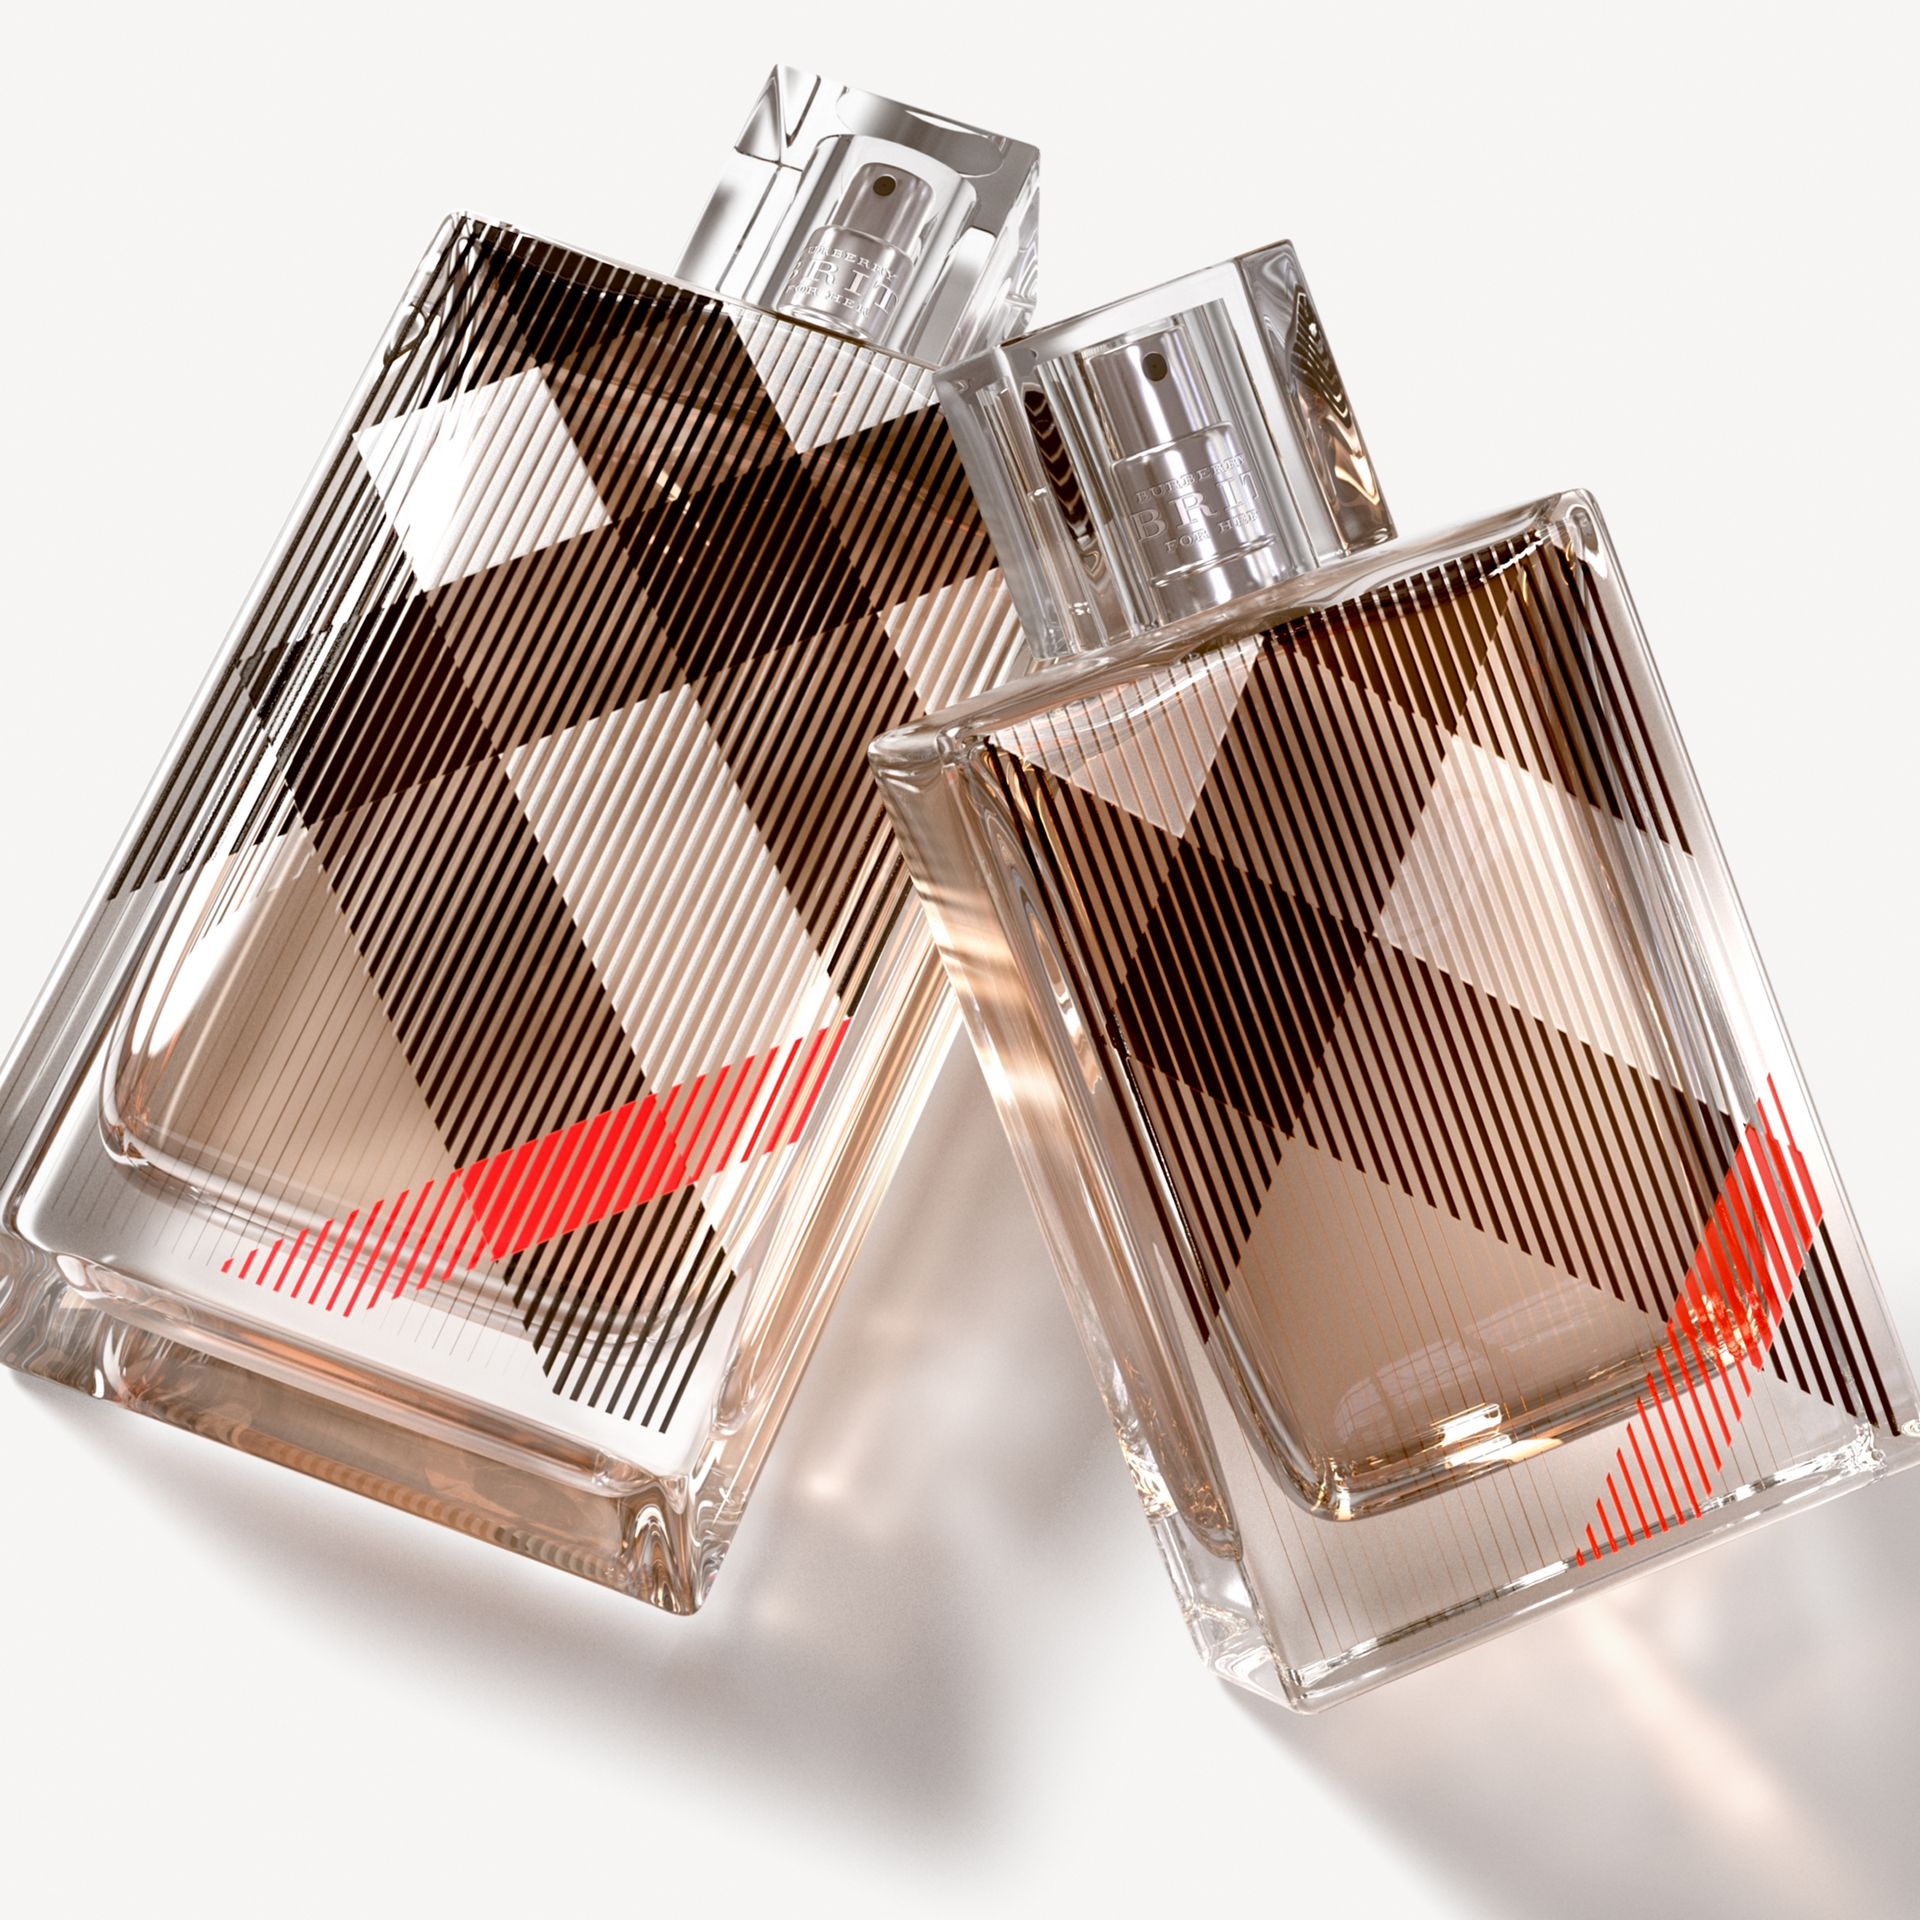 Burberry Brit For Her Eau de Parfum 100 ml - Donna | Burberry - immagine della galleria 1